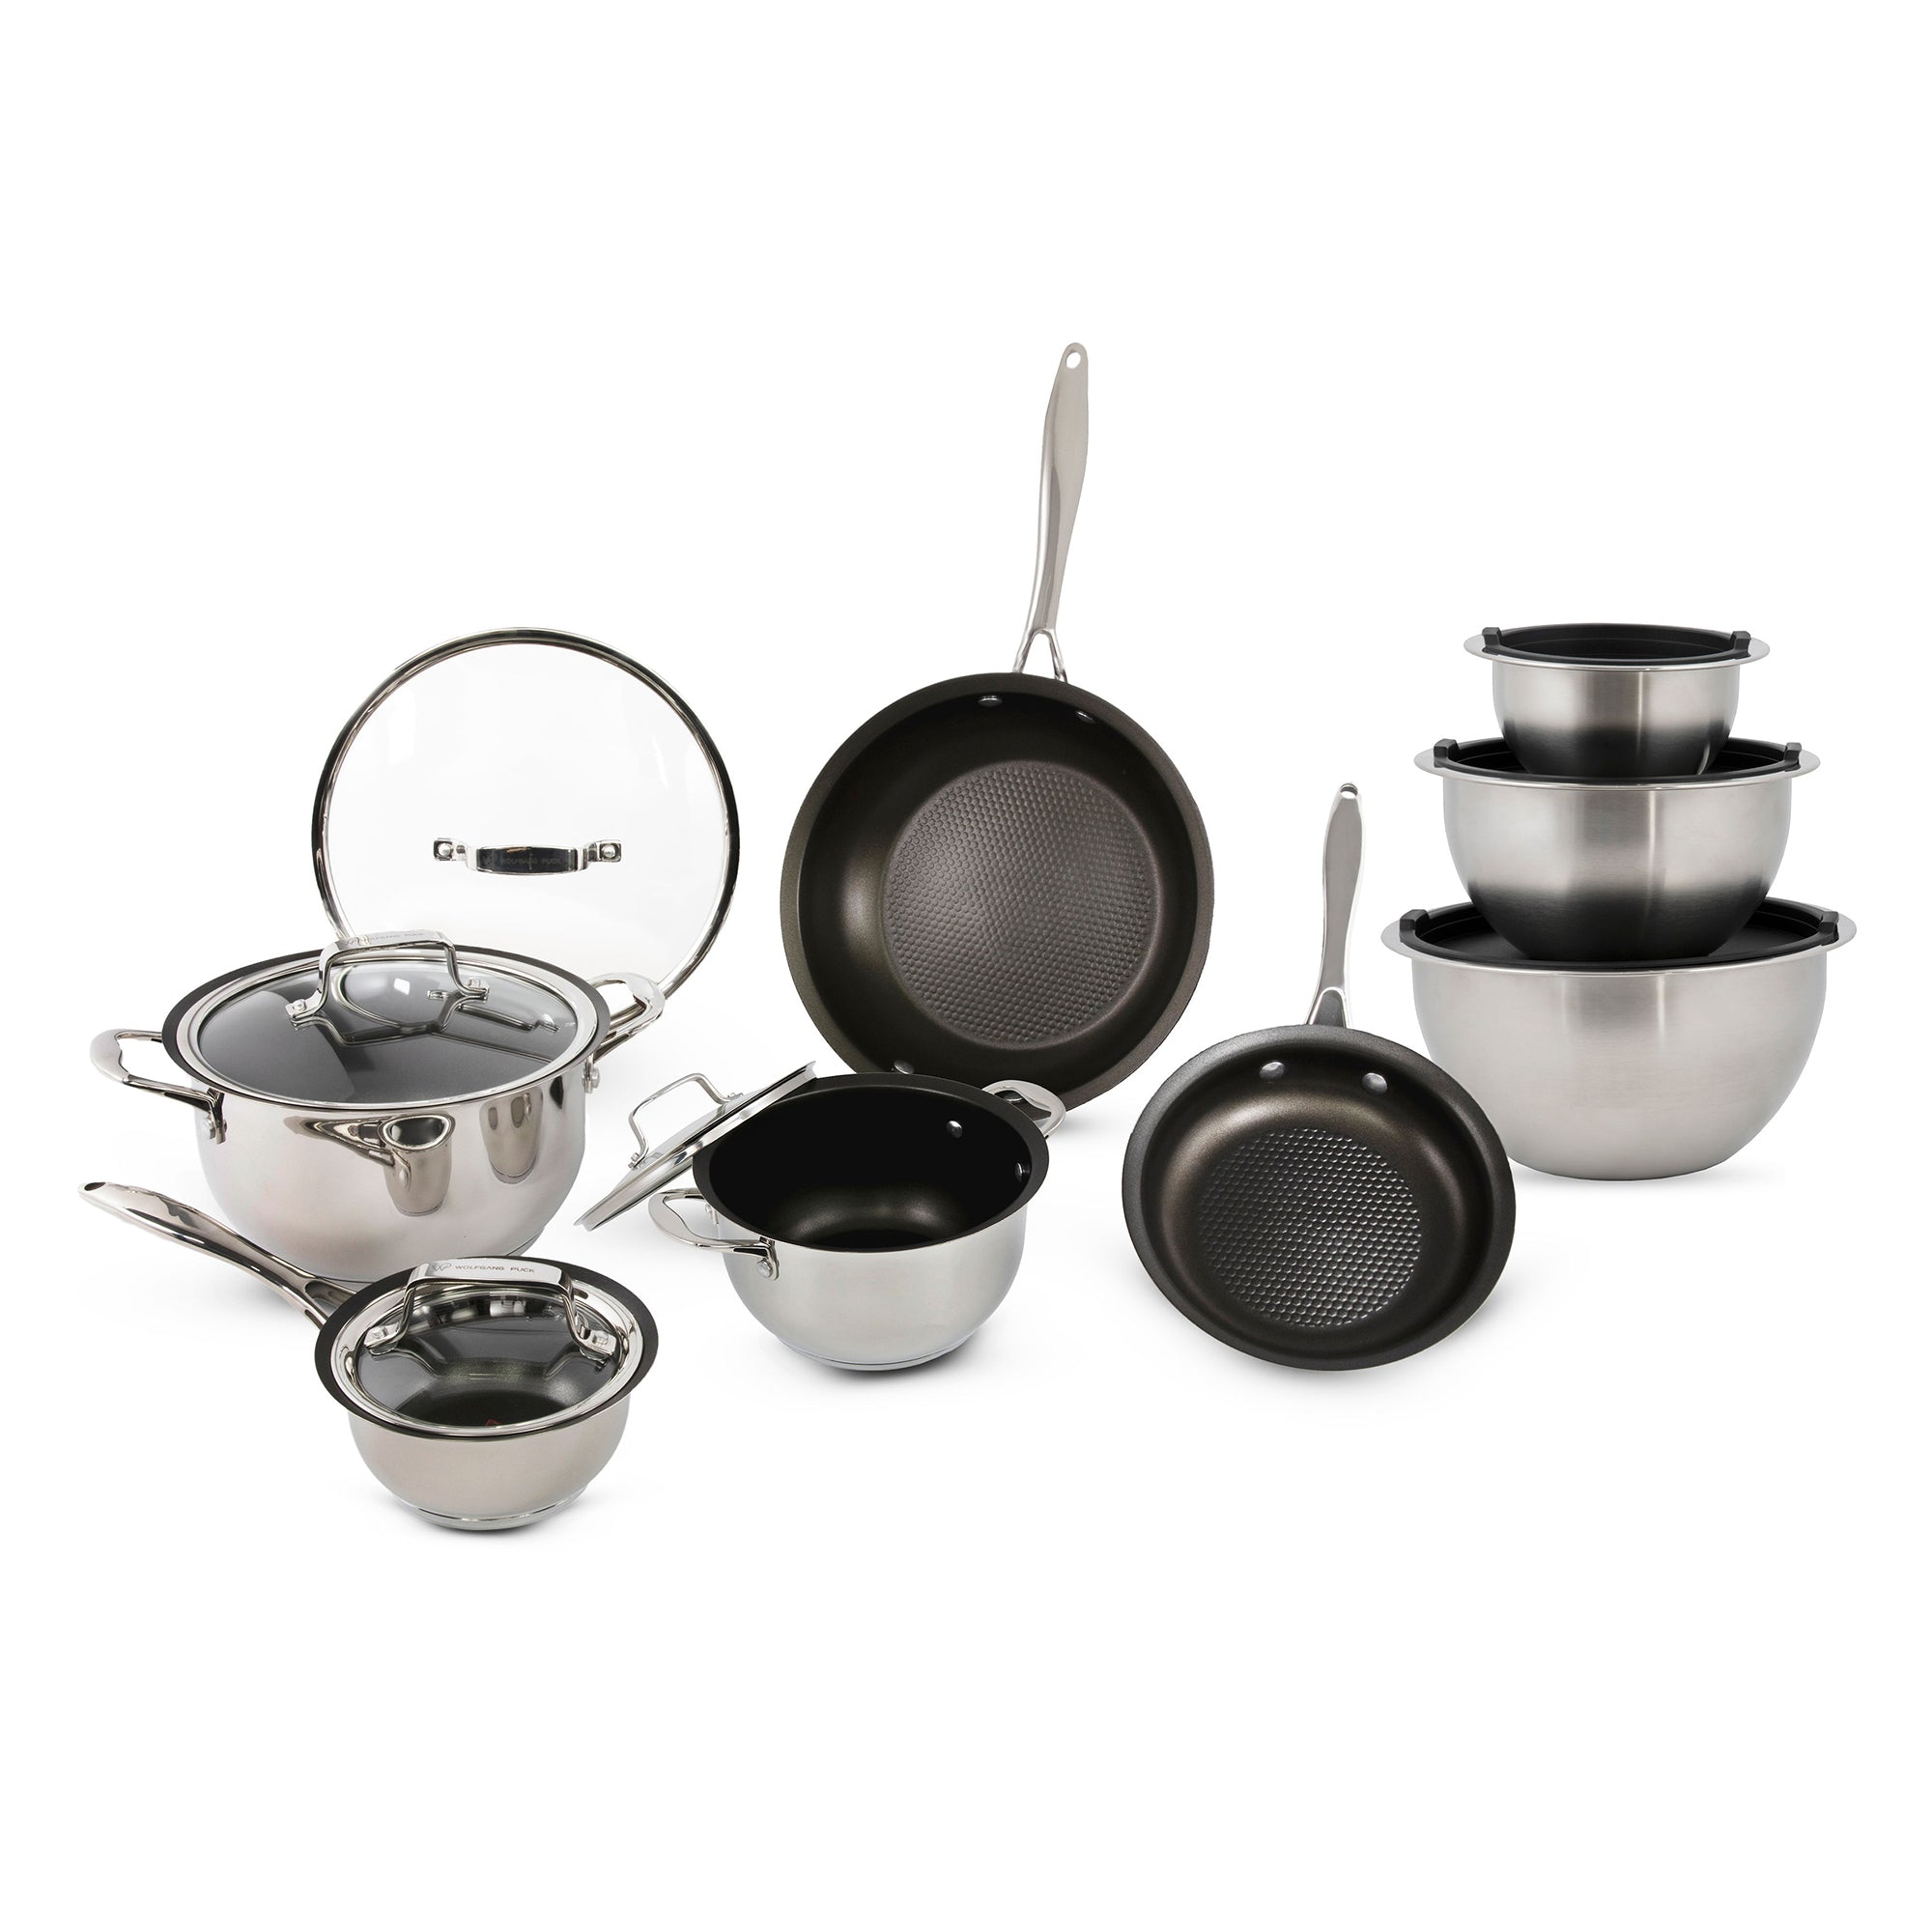 15-Piece Stainless Steel Cookware Set and Mixing Bowls